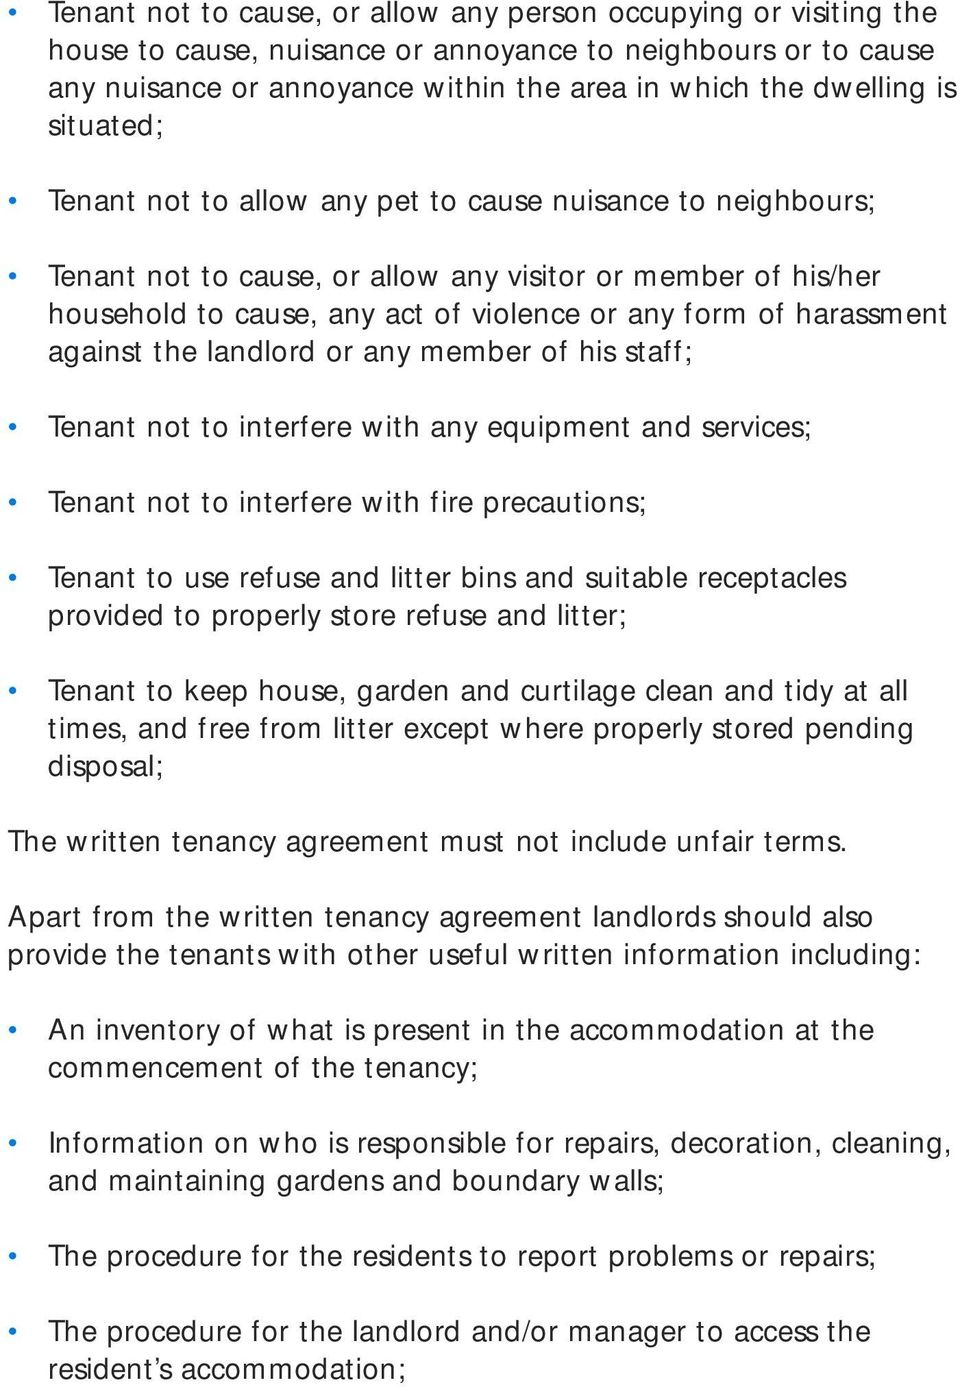 against the landlord or any member of his staff; Tenant not to interfere with any equipment and services; Tenant not to interfere with fire precautions; Tenant to use refuse and litter bins and